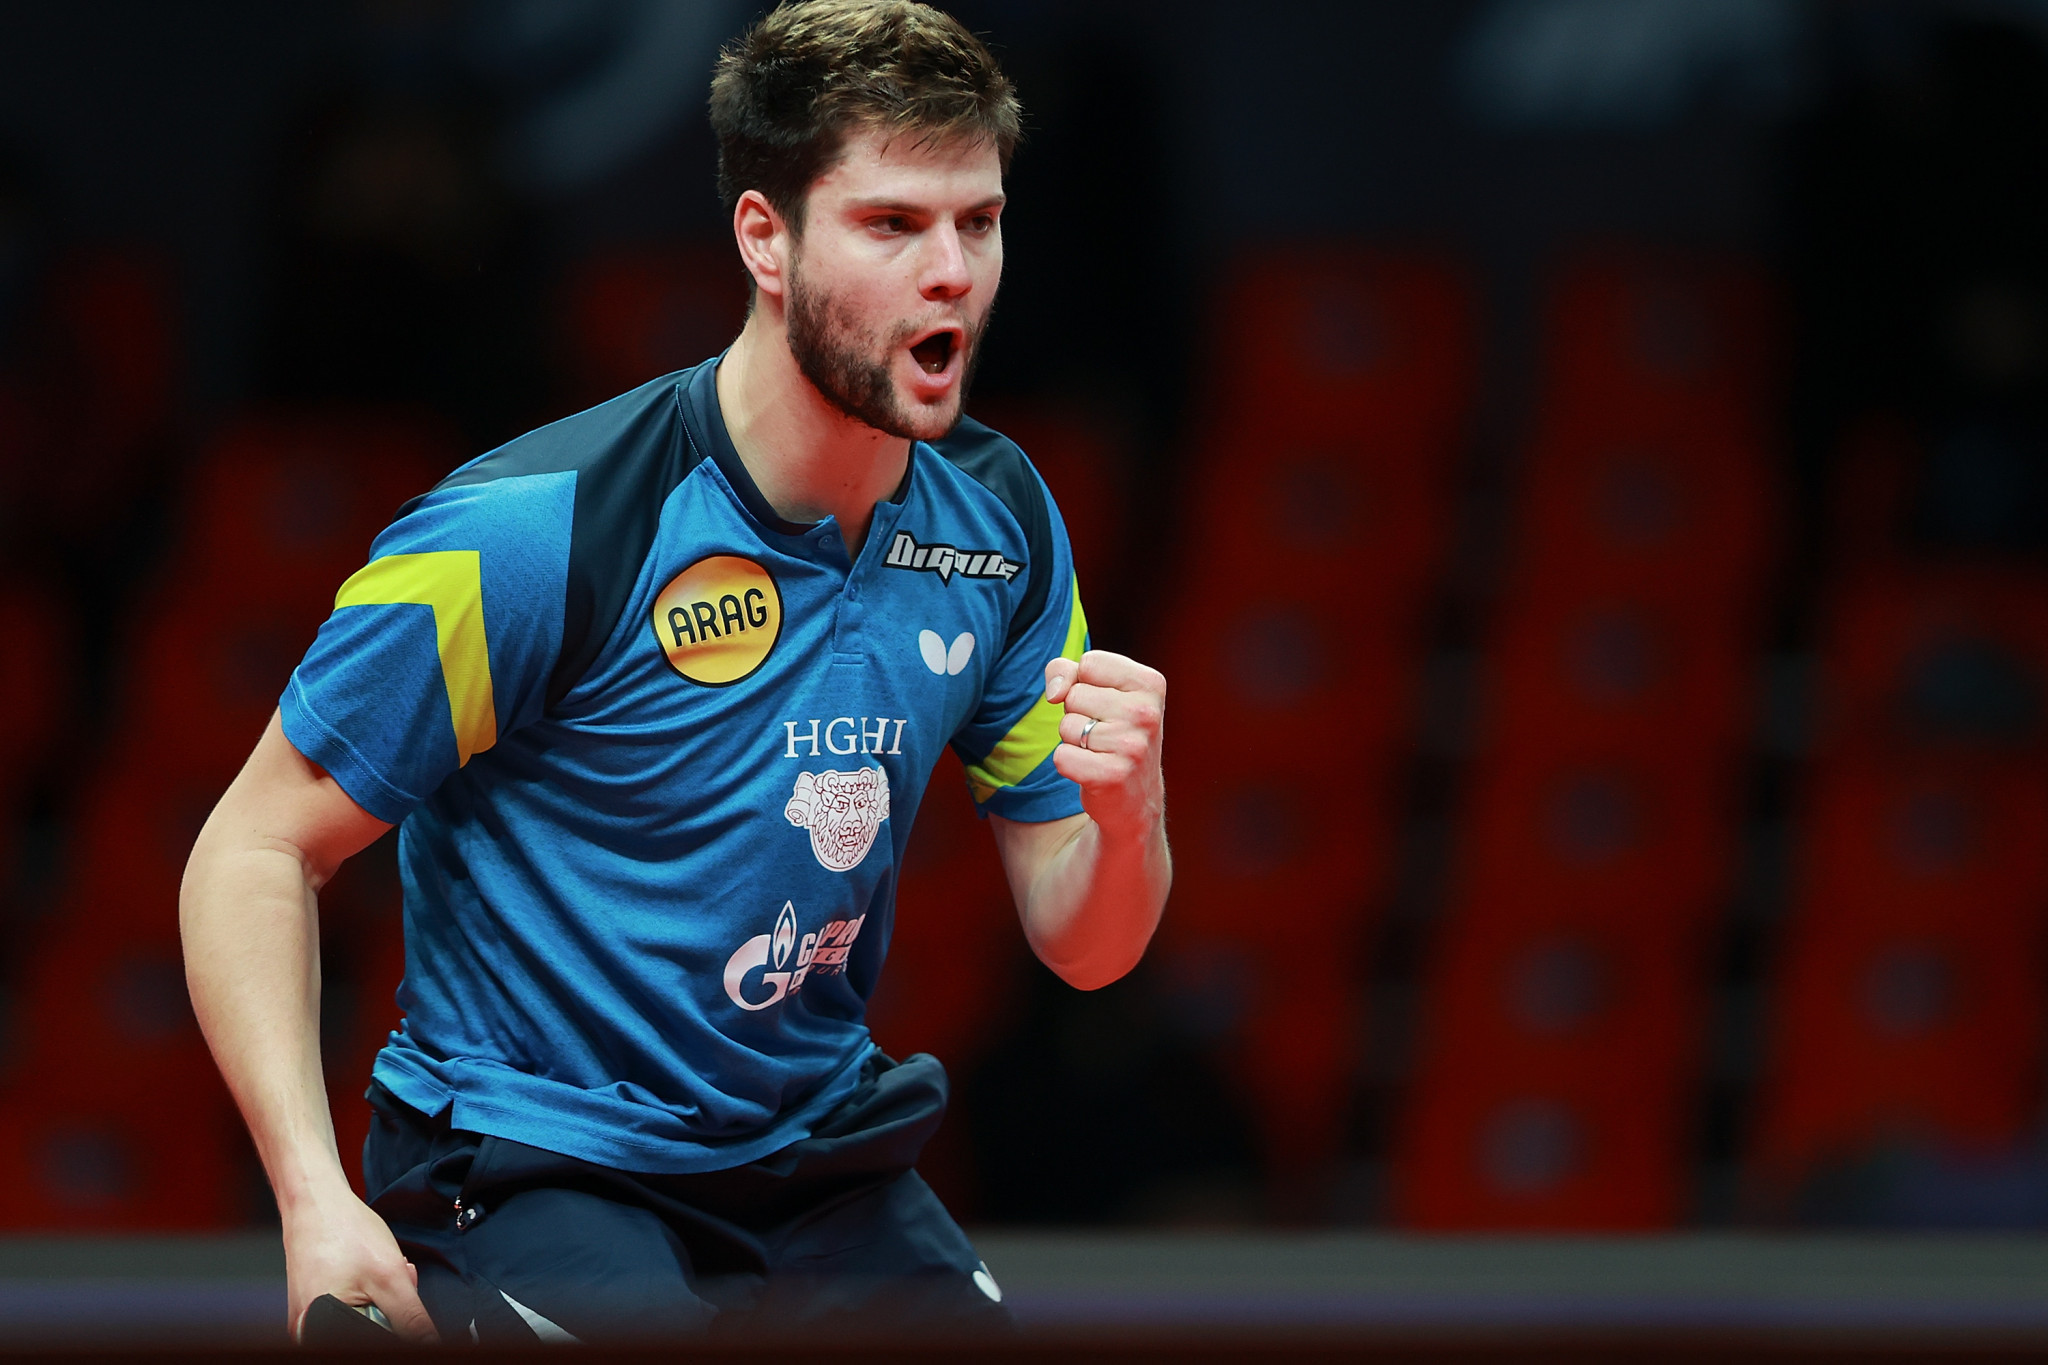 Germany's Dimitrij Ovtcharov came from two games down to triumph in the men's singles semi-finals ©Getty Images